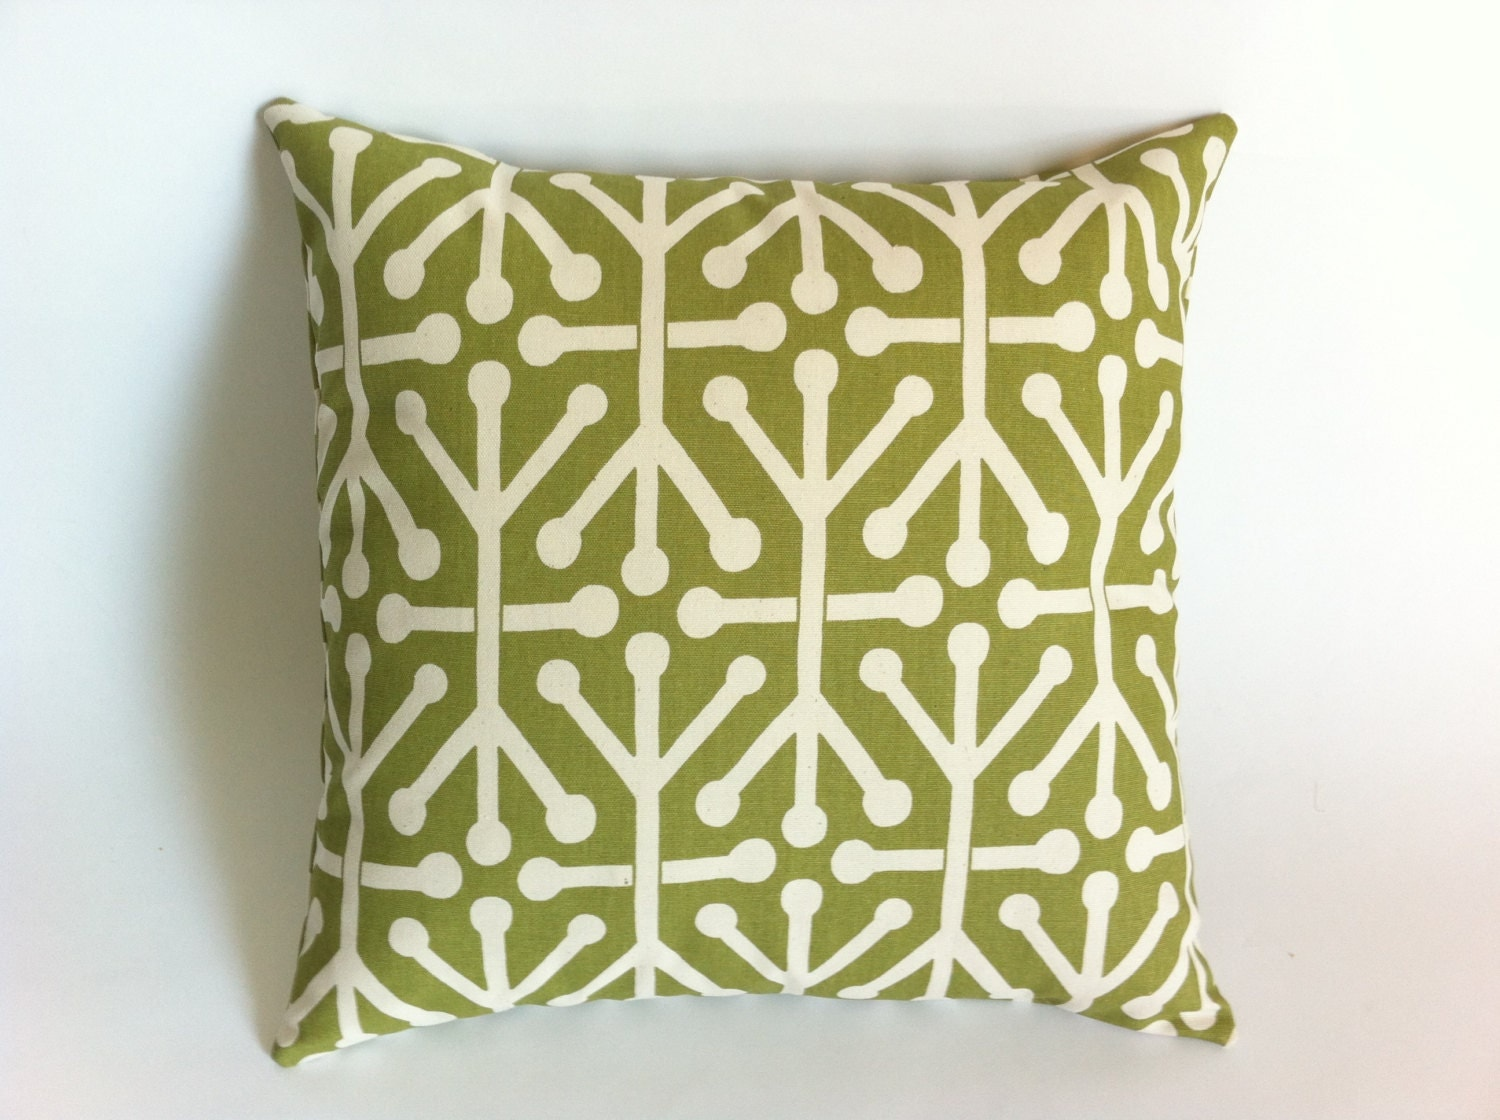 Olive Green Decorative Pillow : One Olive Green Decorative Throw Zippered Pillow by Pillomatic